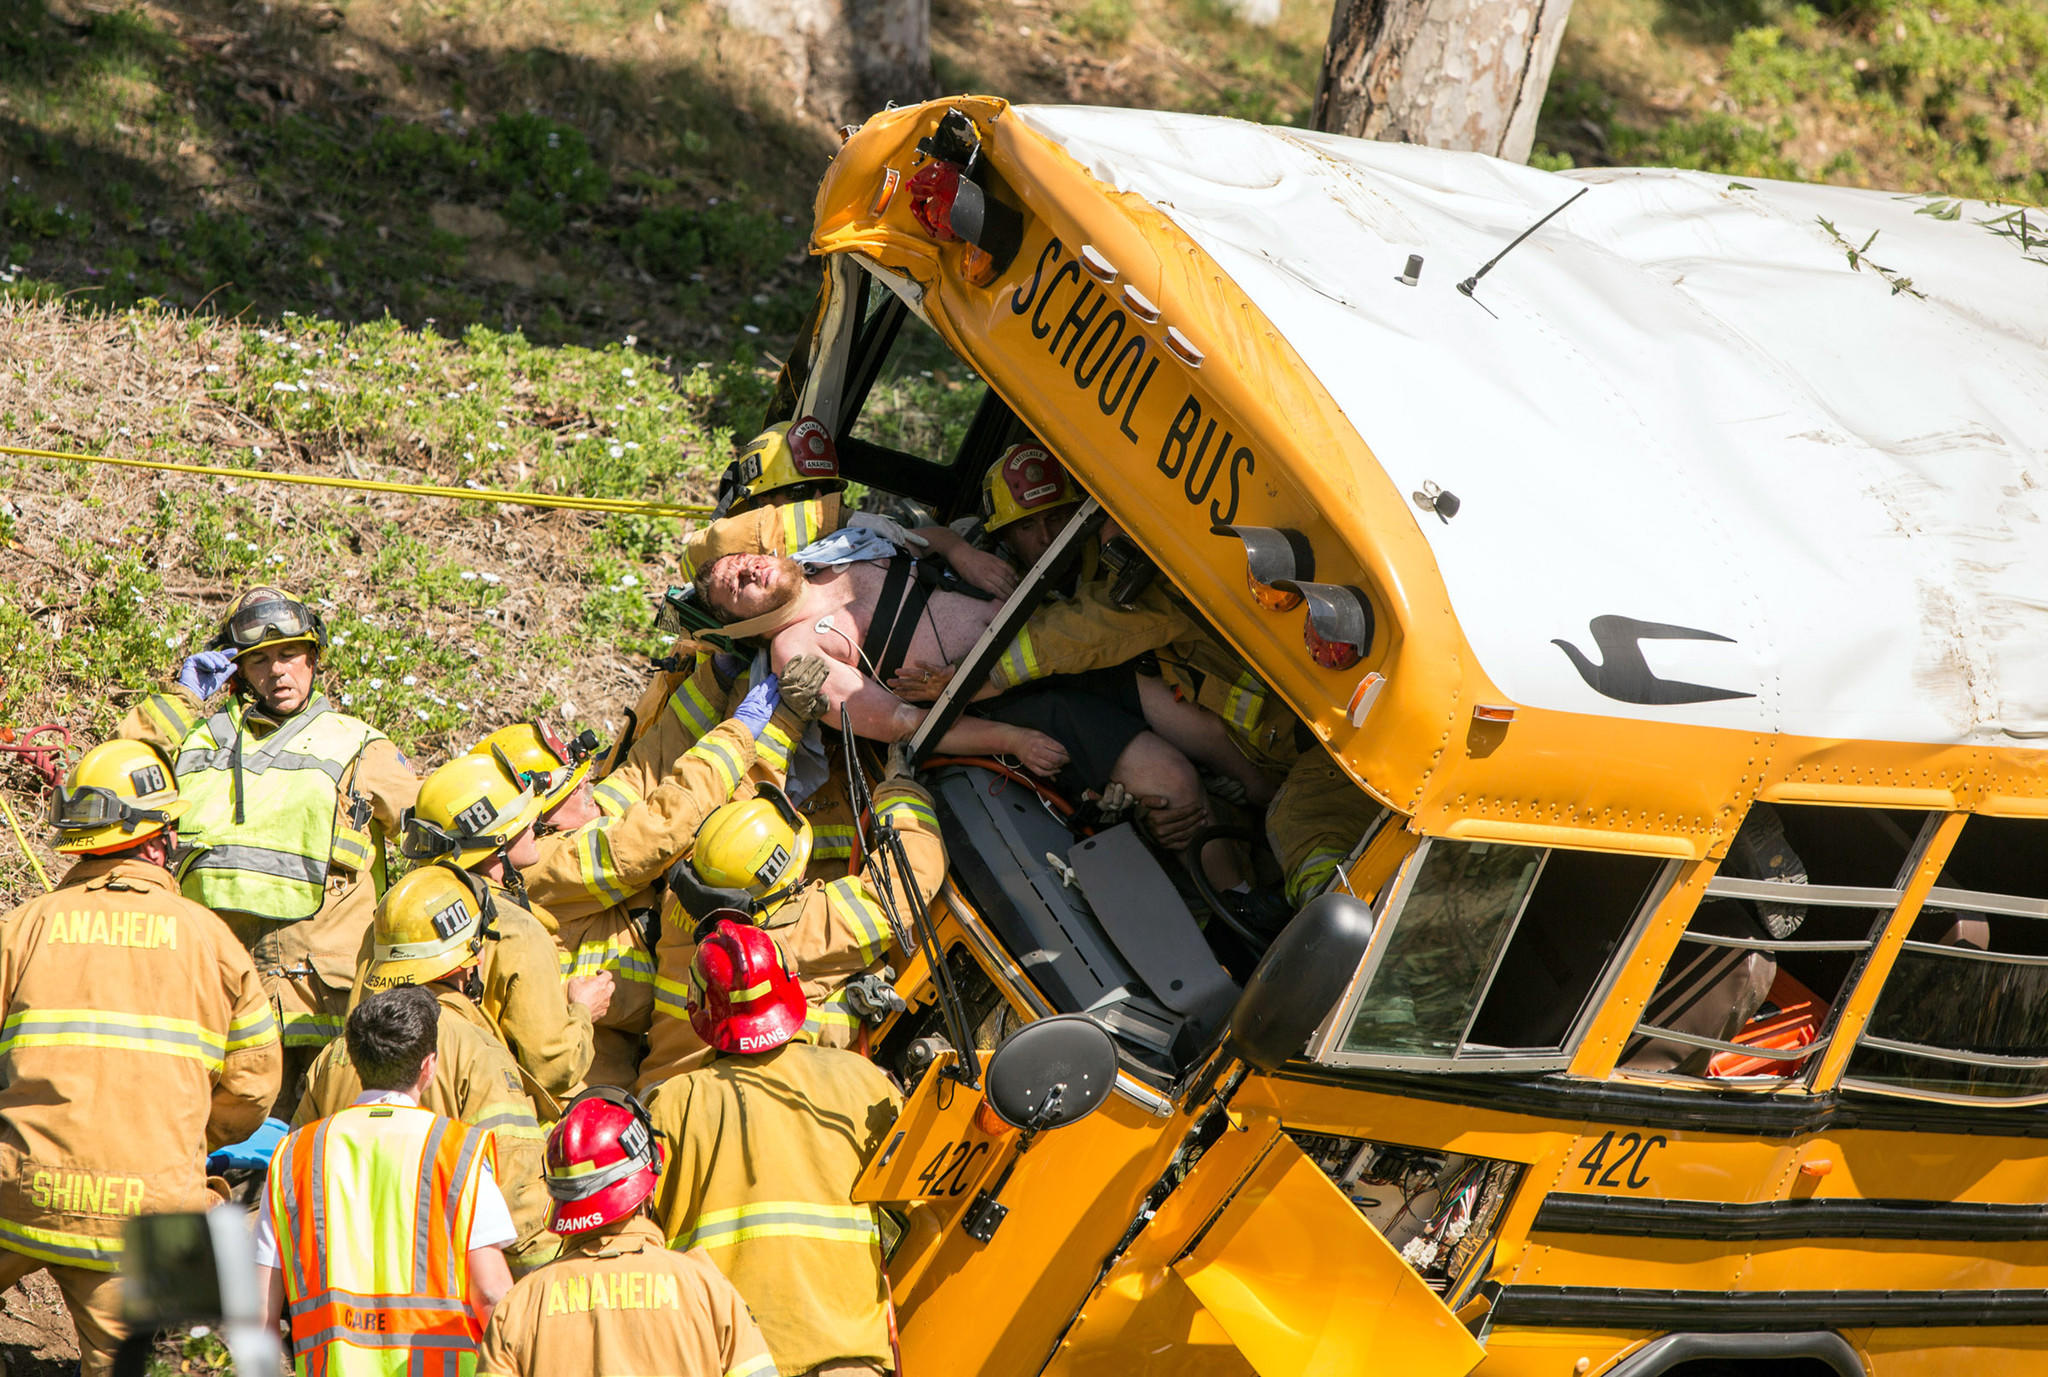 Firefighters pull the driver from the front of a school bus that crashed Thursday in the Anaheim Hills, leaving six people injured, officials say.